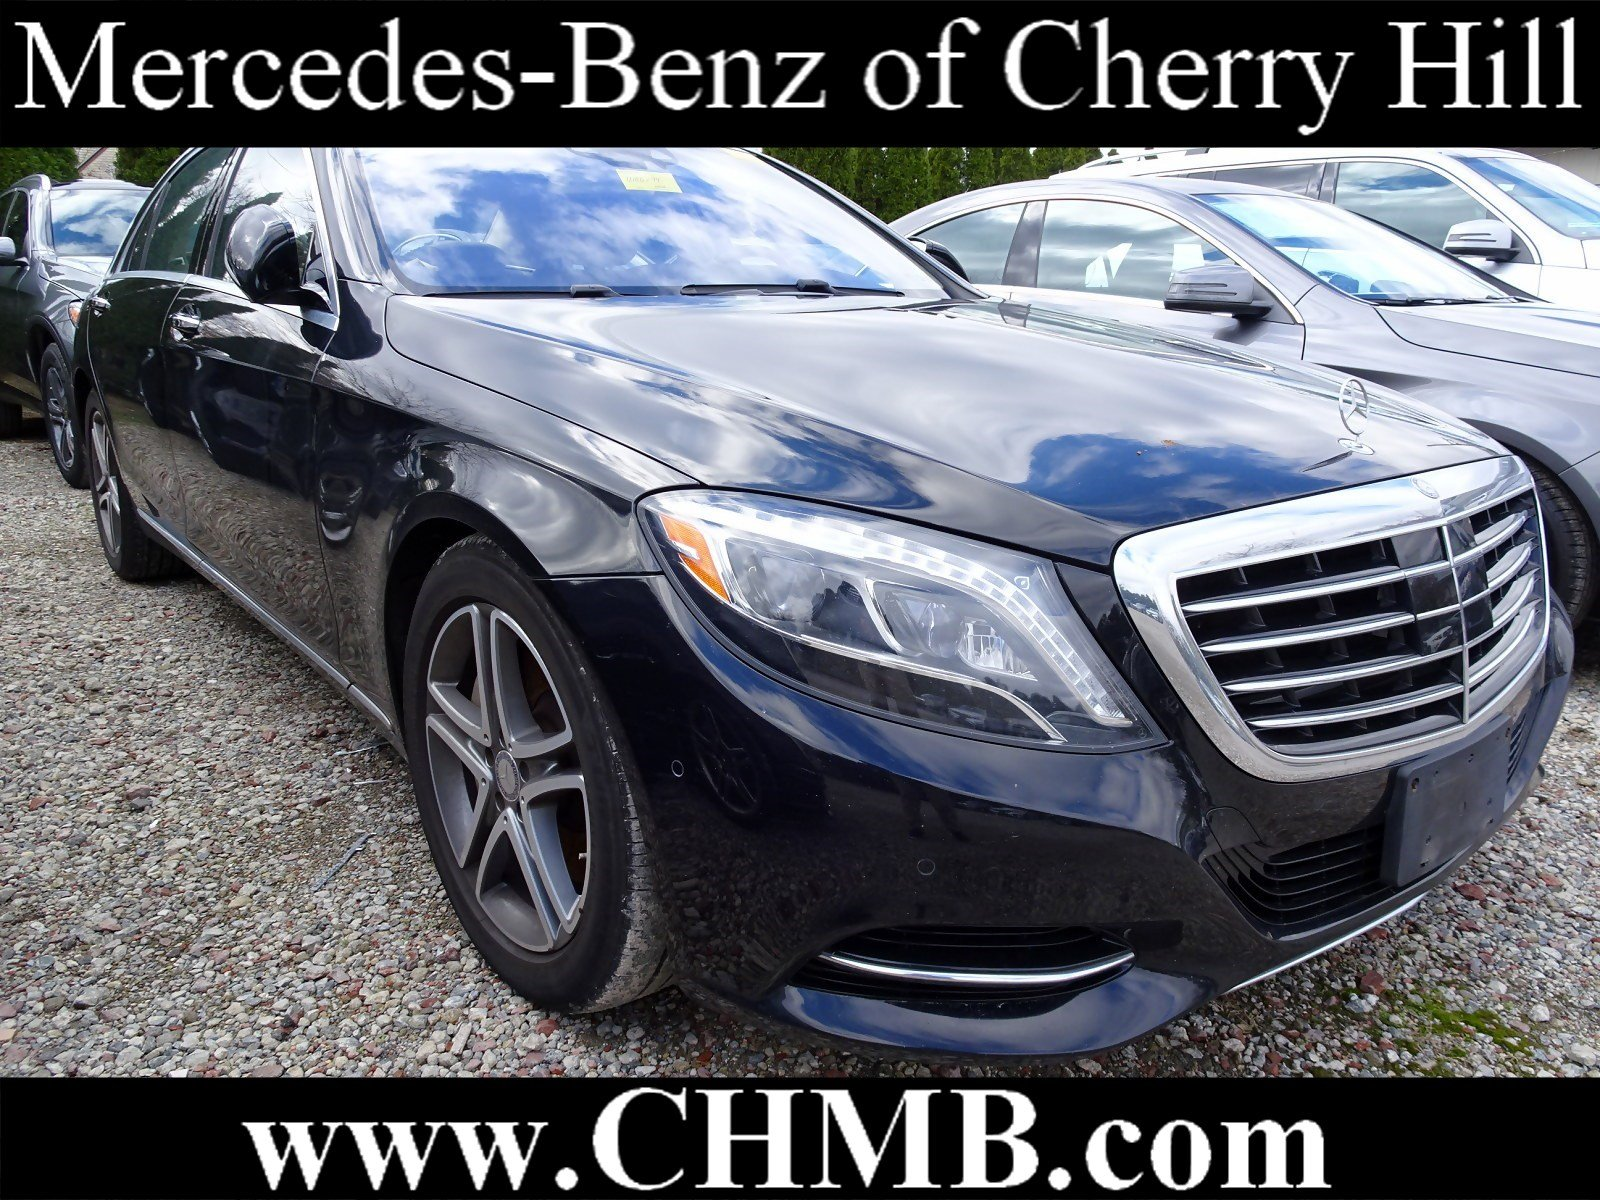 Certified Pre Owned 2016 Mercedes Benz S Class S 550 SEDAN in Cherry